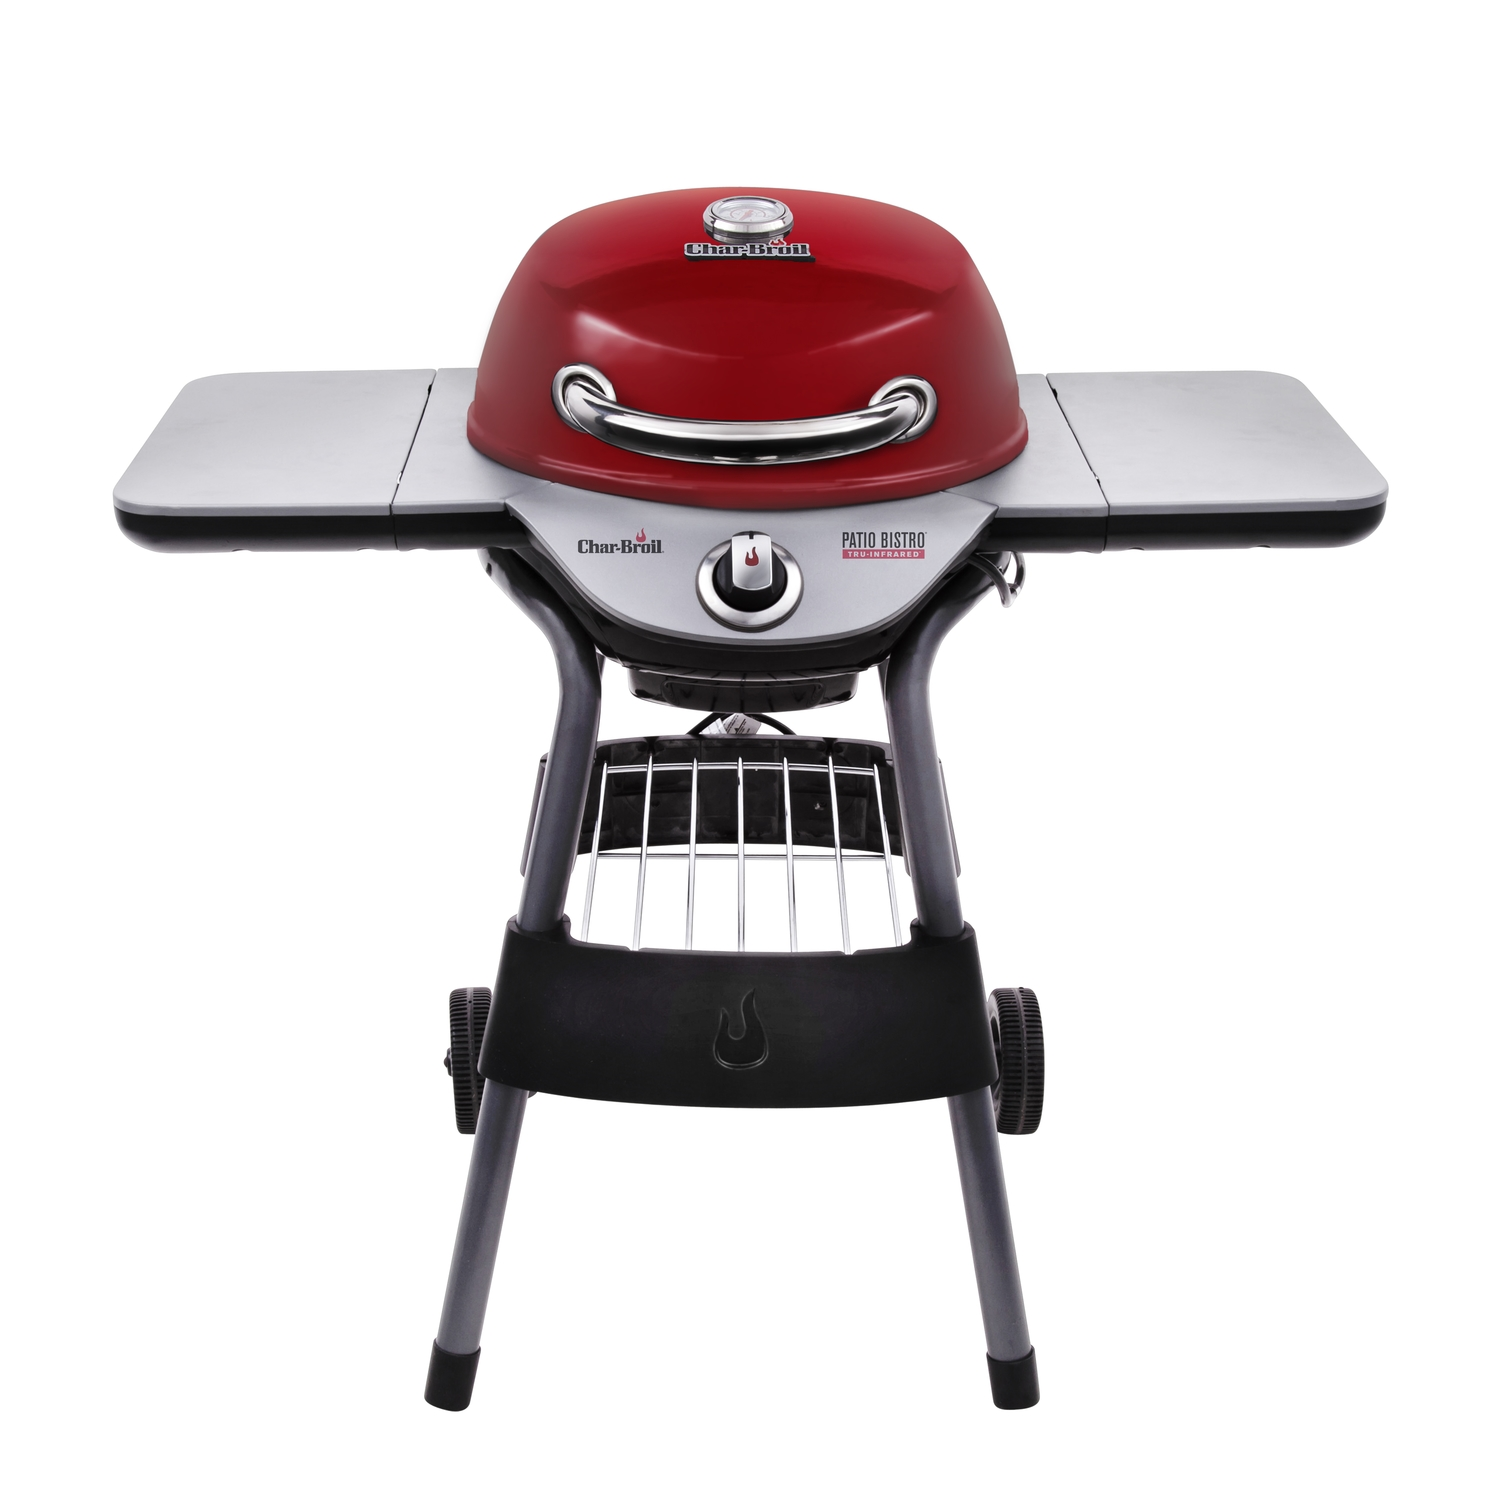 Char-Broil  Bistro  Electric  Grill  Red